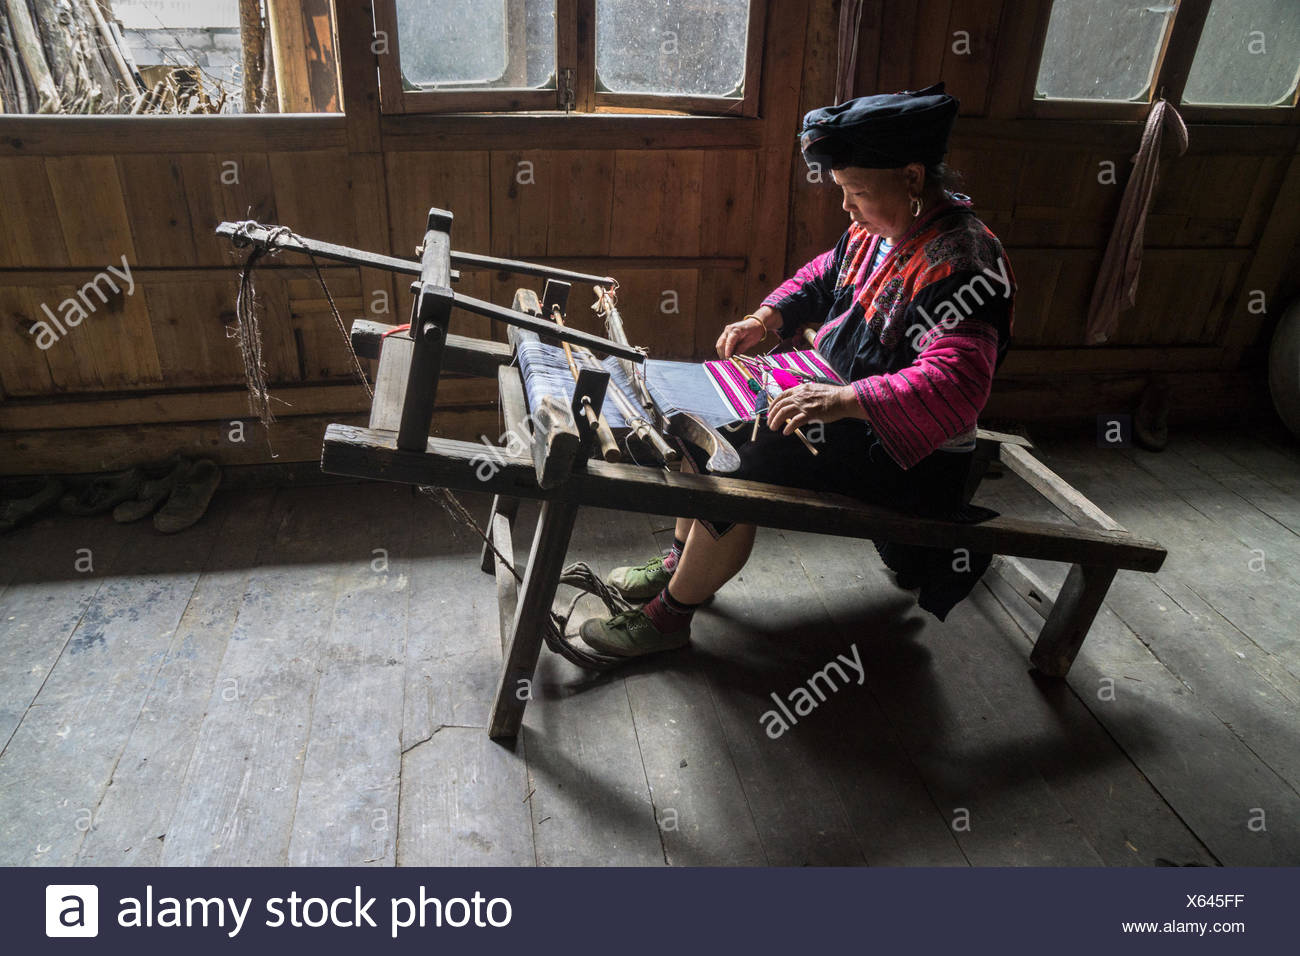 Chinese woman weaving fabric, Guilin, China - Stock Image